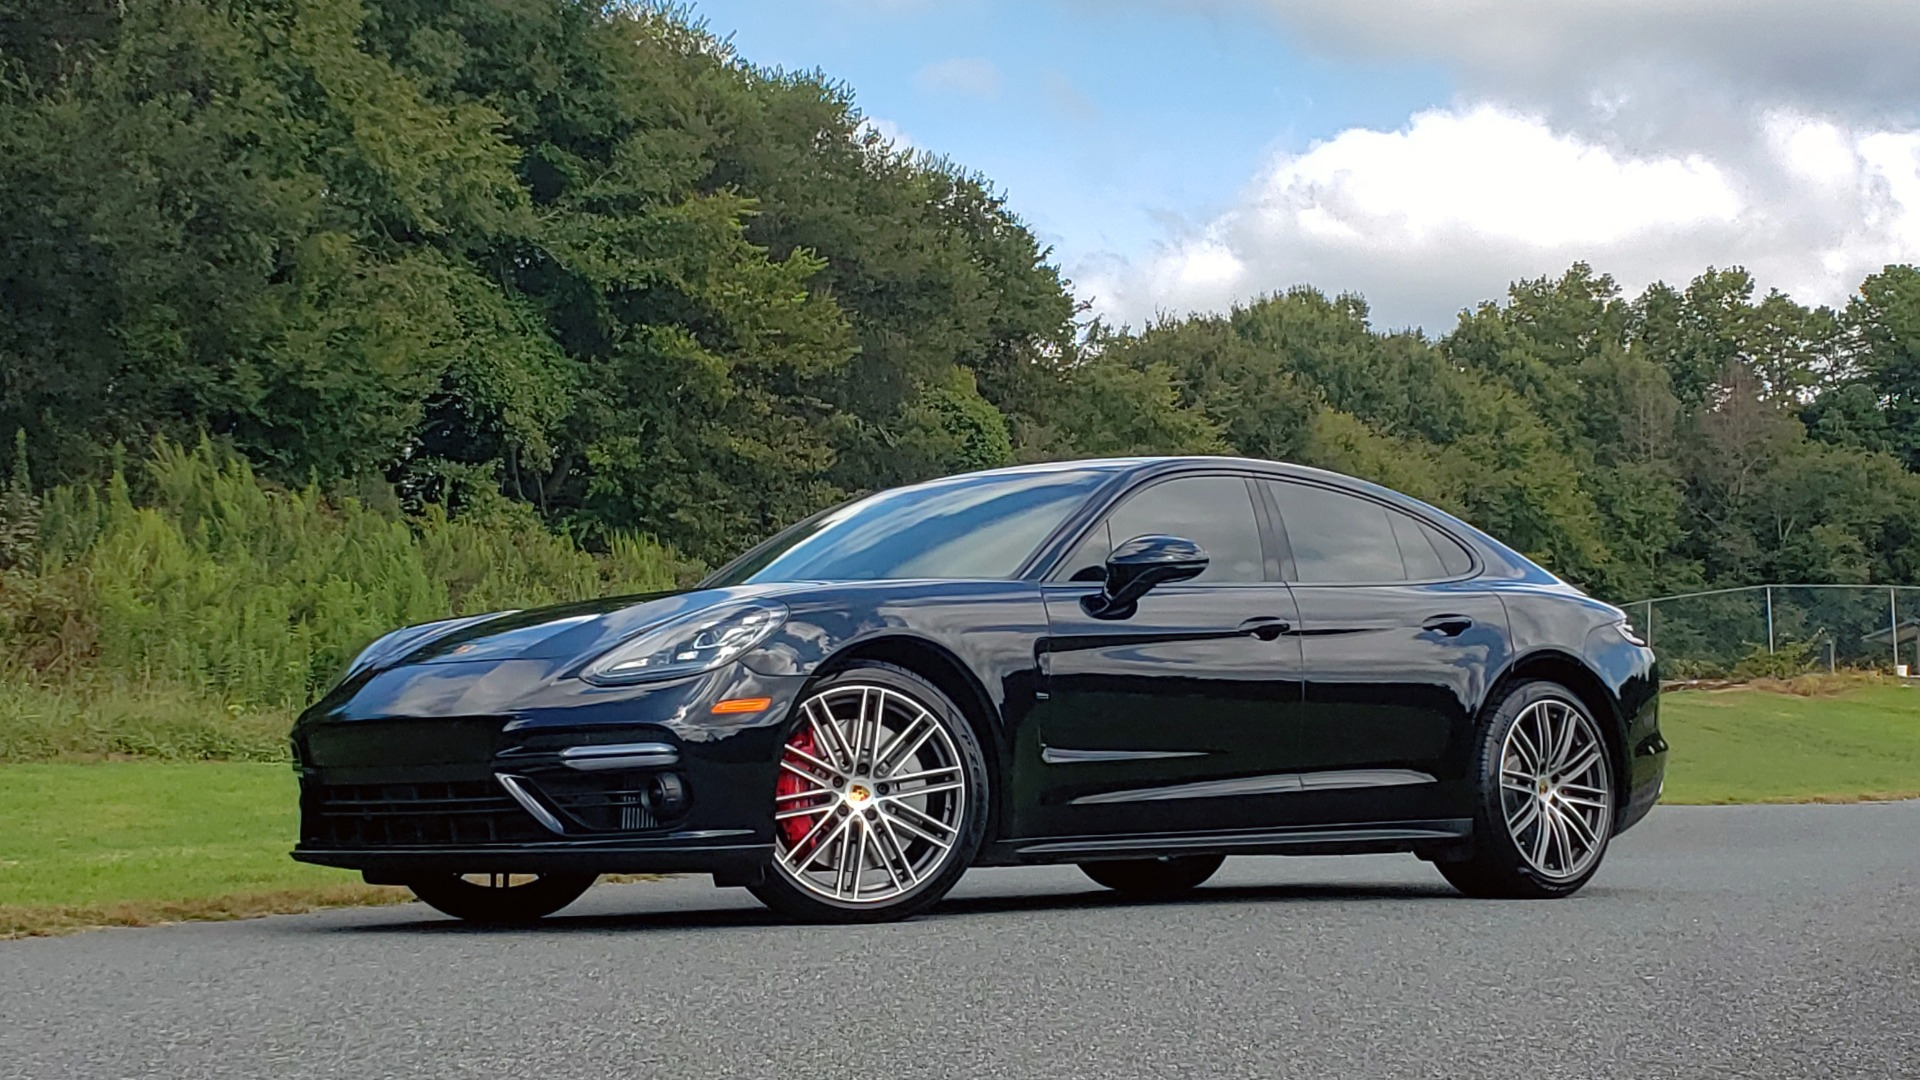 Used 2017 Porsche PANAMERA TURBO AWD / 4.0L V8 / AUTO / NAV / BOSE / REARVIEW / 21IN WHEELS for sale $98,995 at Formula Imports in Charlotte NC 28227 2